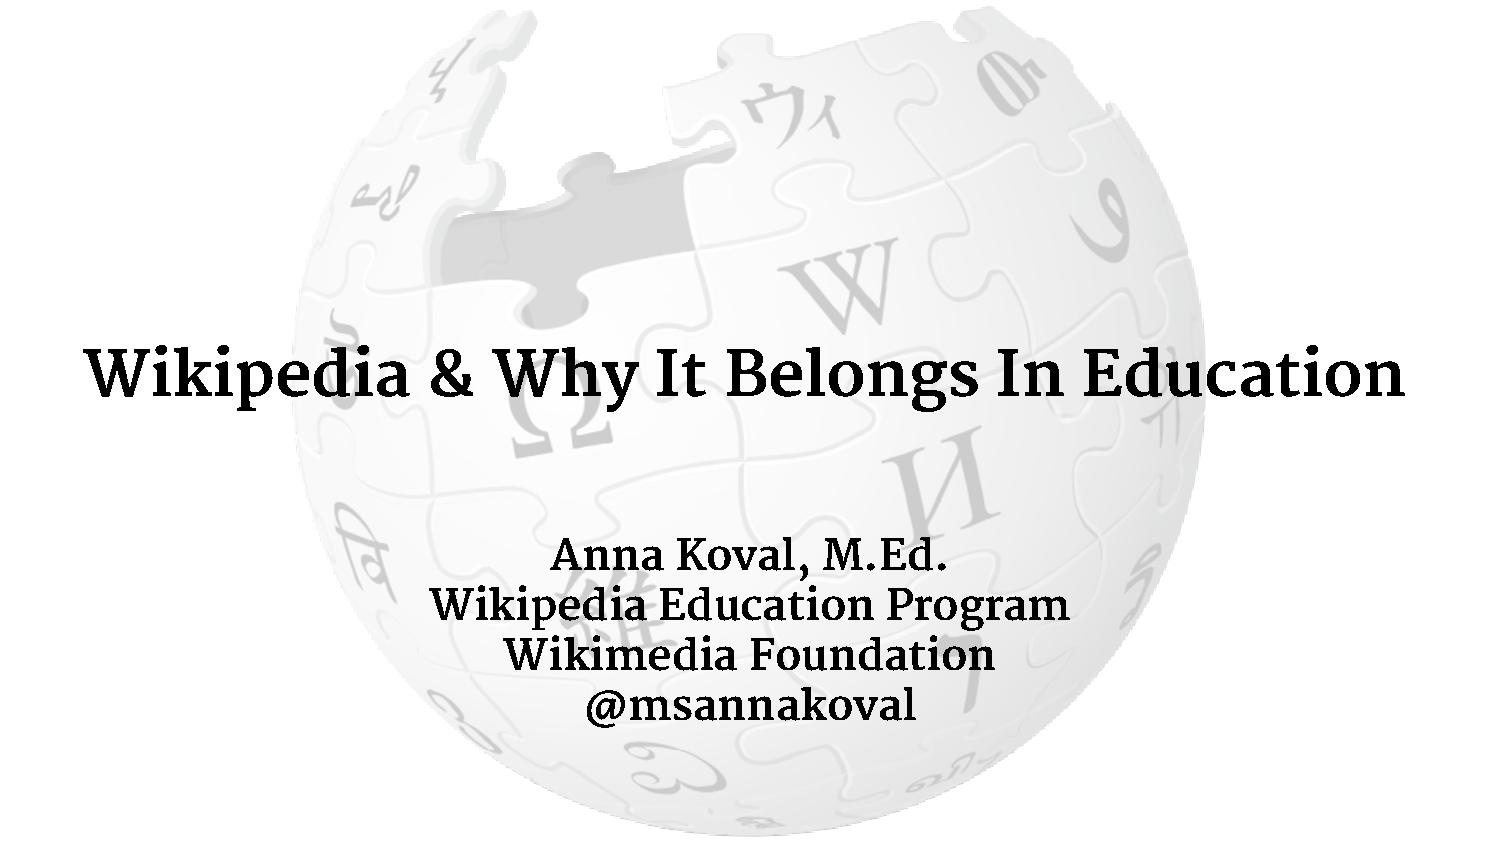 File:Wikipedia & Why It Belongs In Education.pdf